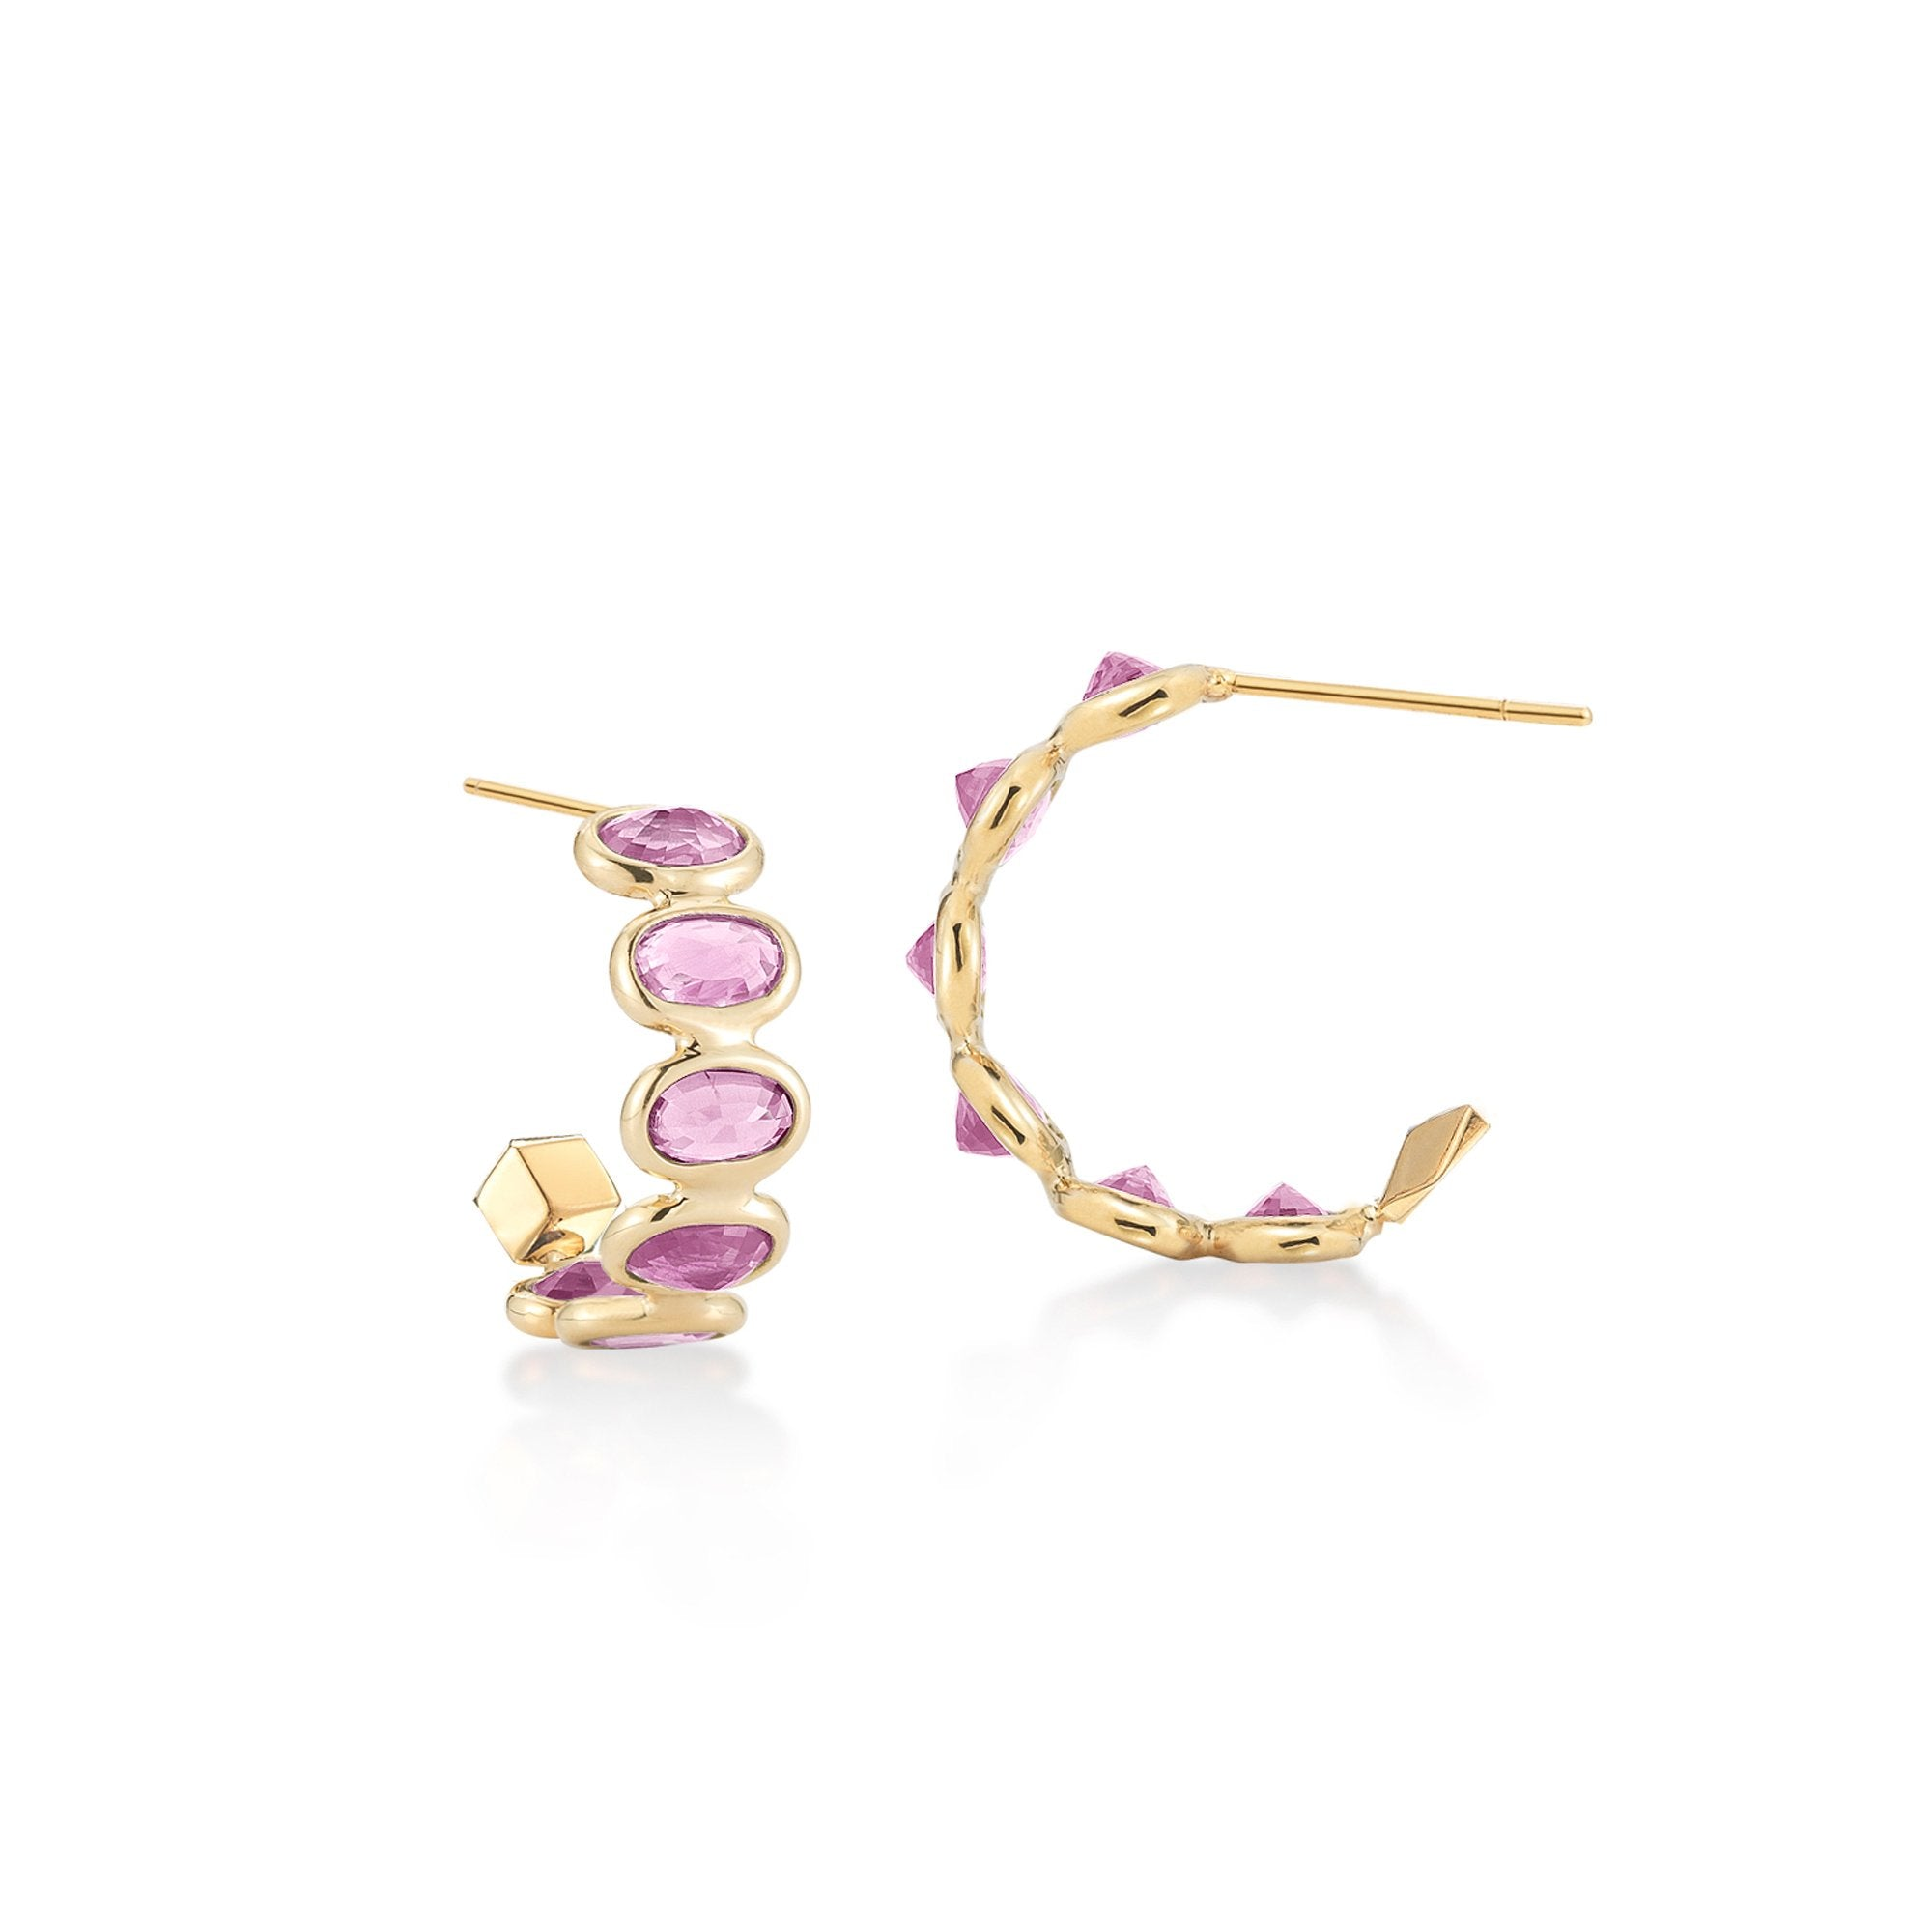 Pink Sapphire 'Ombre' Hoop Earrings, Petite - Paolo Costagli - 1